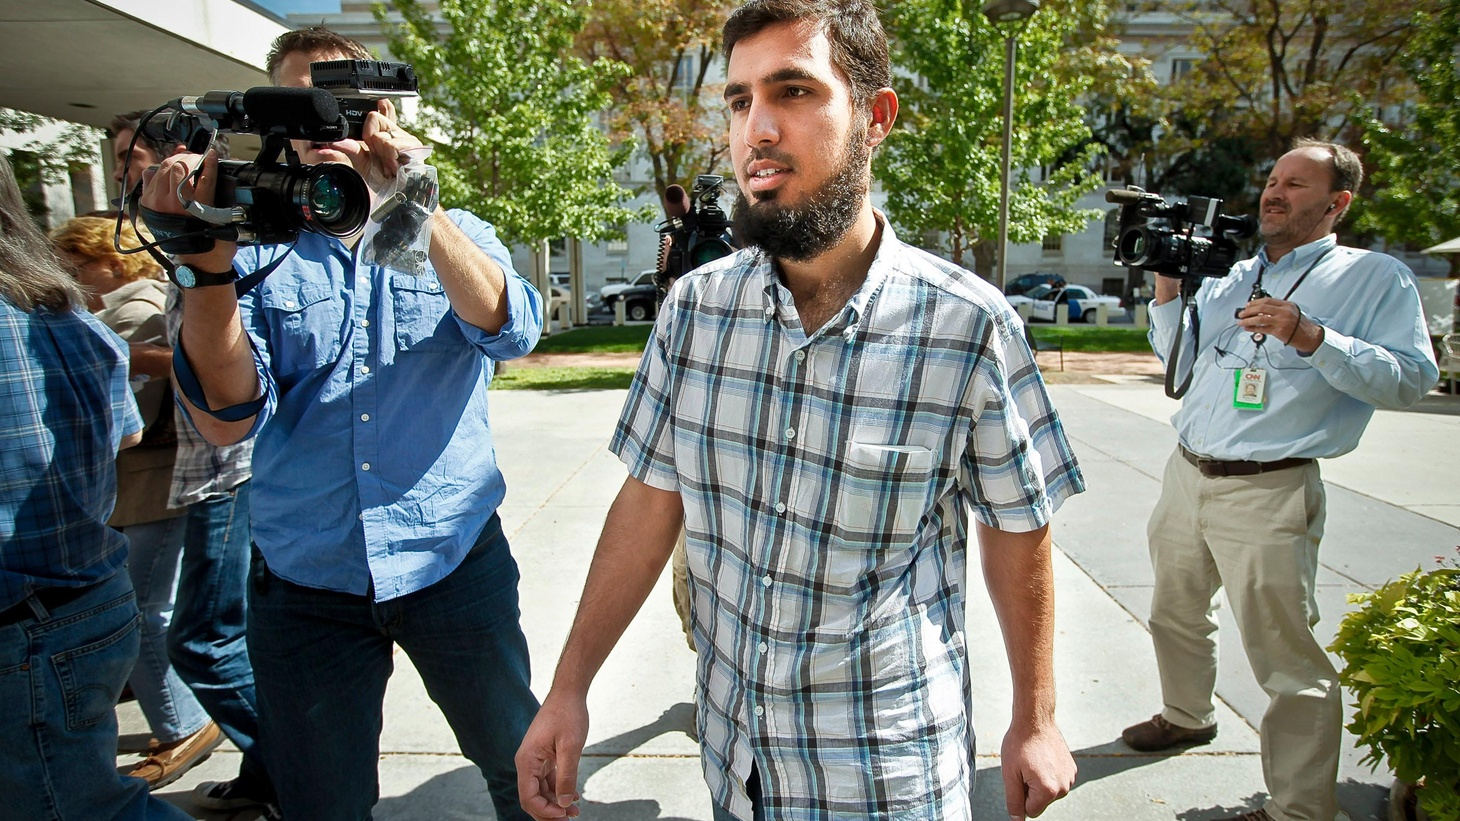 Najibullah Zazi, a 24-year¬old Afghan entered a plea of 'not guilty' this week to charges of conspiracy to use weapons of mass destruction, in what's being called one of the most serious terrorist threats since 9/11.  His arrest came amidst a number of other terror related cases. Also, the US and its allies talk to Iran about its nuclear program. On Reporter's Notebook, could massive earthquakes thousands of miles apart impact other faults around the globe? Conan Nolan guest hosts this rebroadcast of today's To the Point.